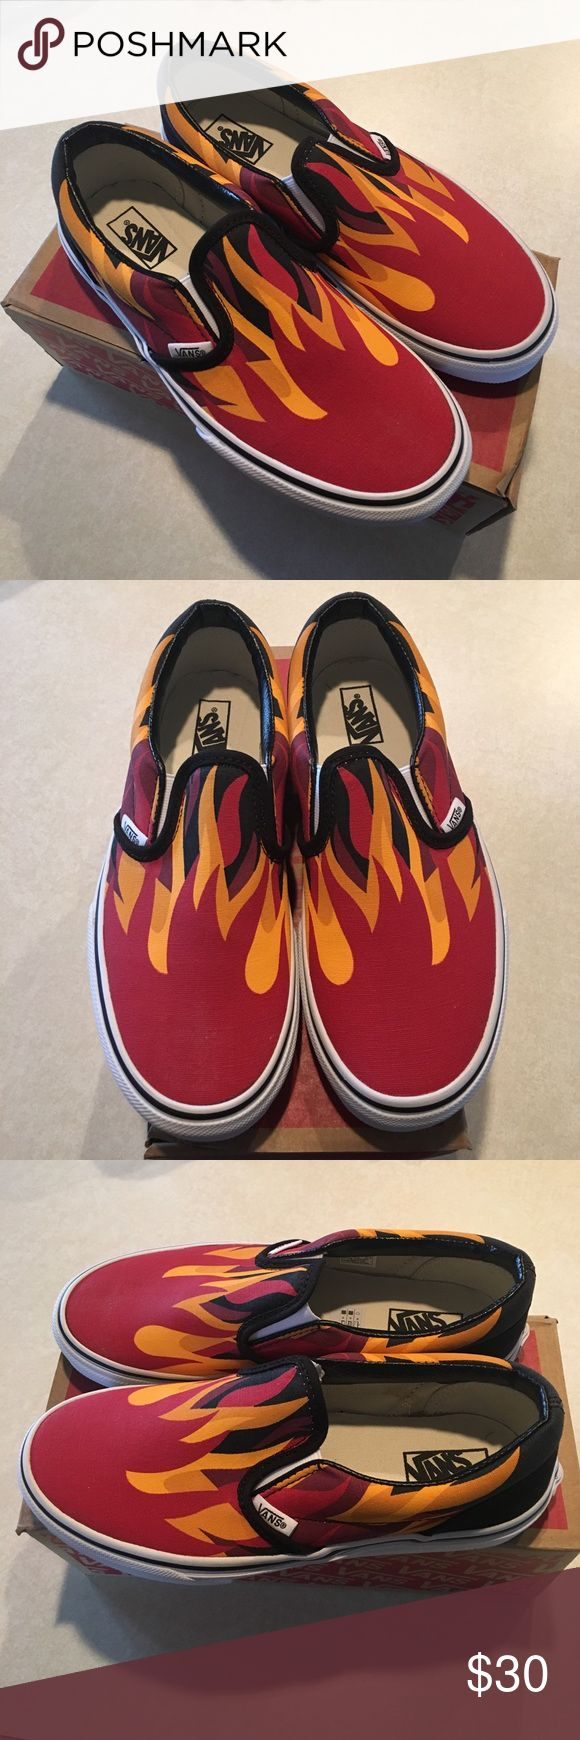 NEW 🔥 youth Vans Classic Slip-on Brand new in box! Vans Classic Slip on shoes. Never worn. Racing red, black, with flame design. Box has some Sharpie on it but the shoes are in mint condition. Vans Shoes Sneakers